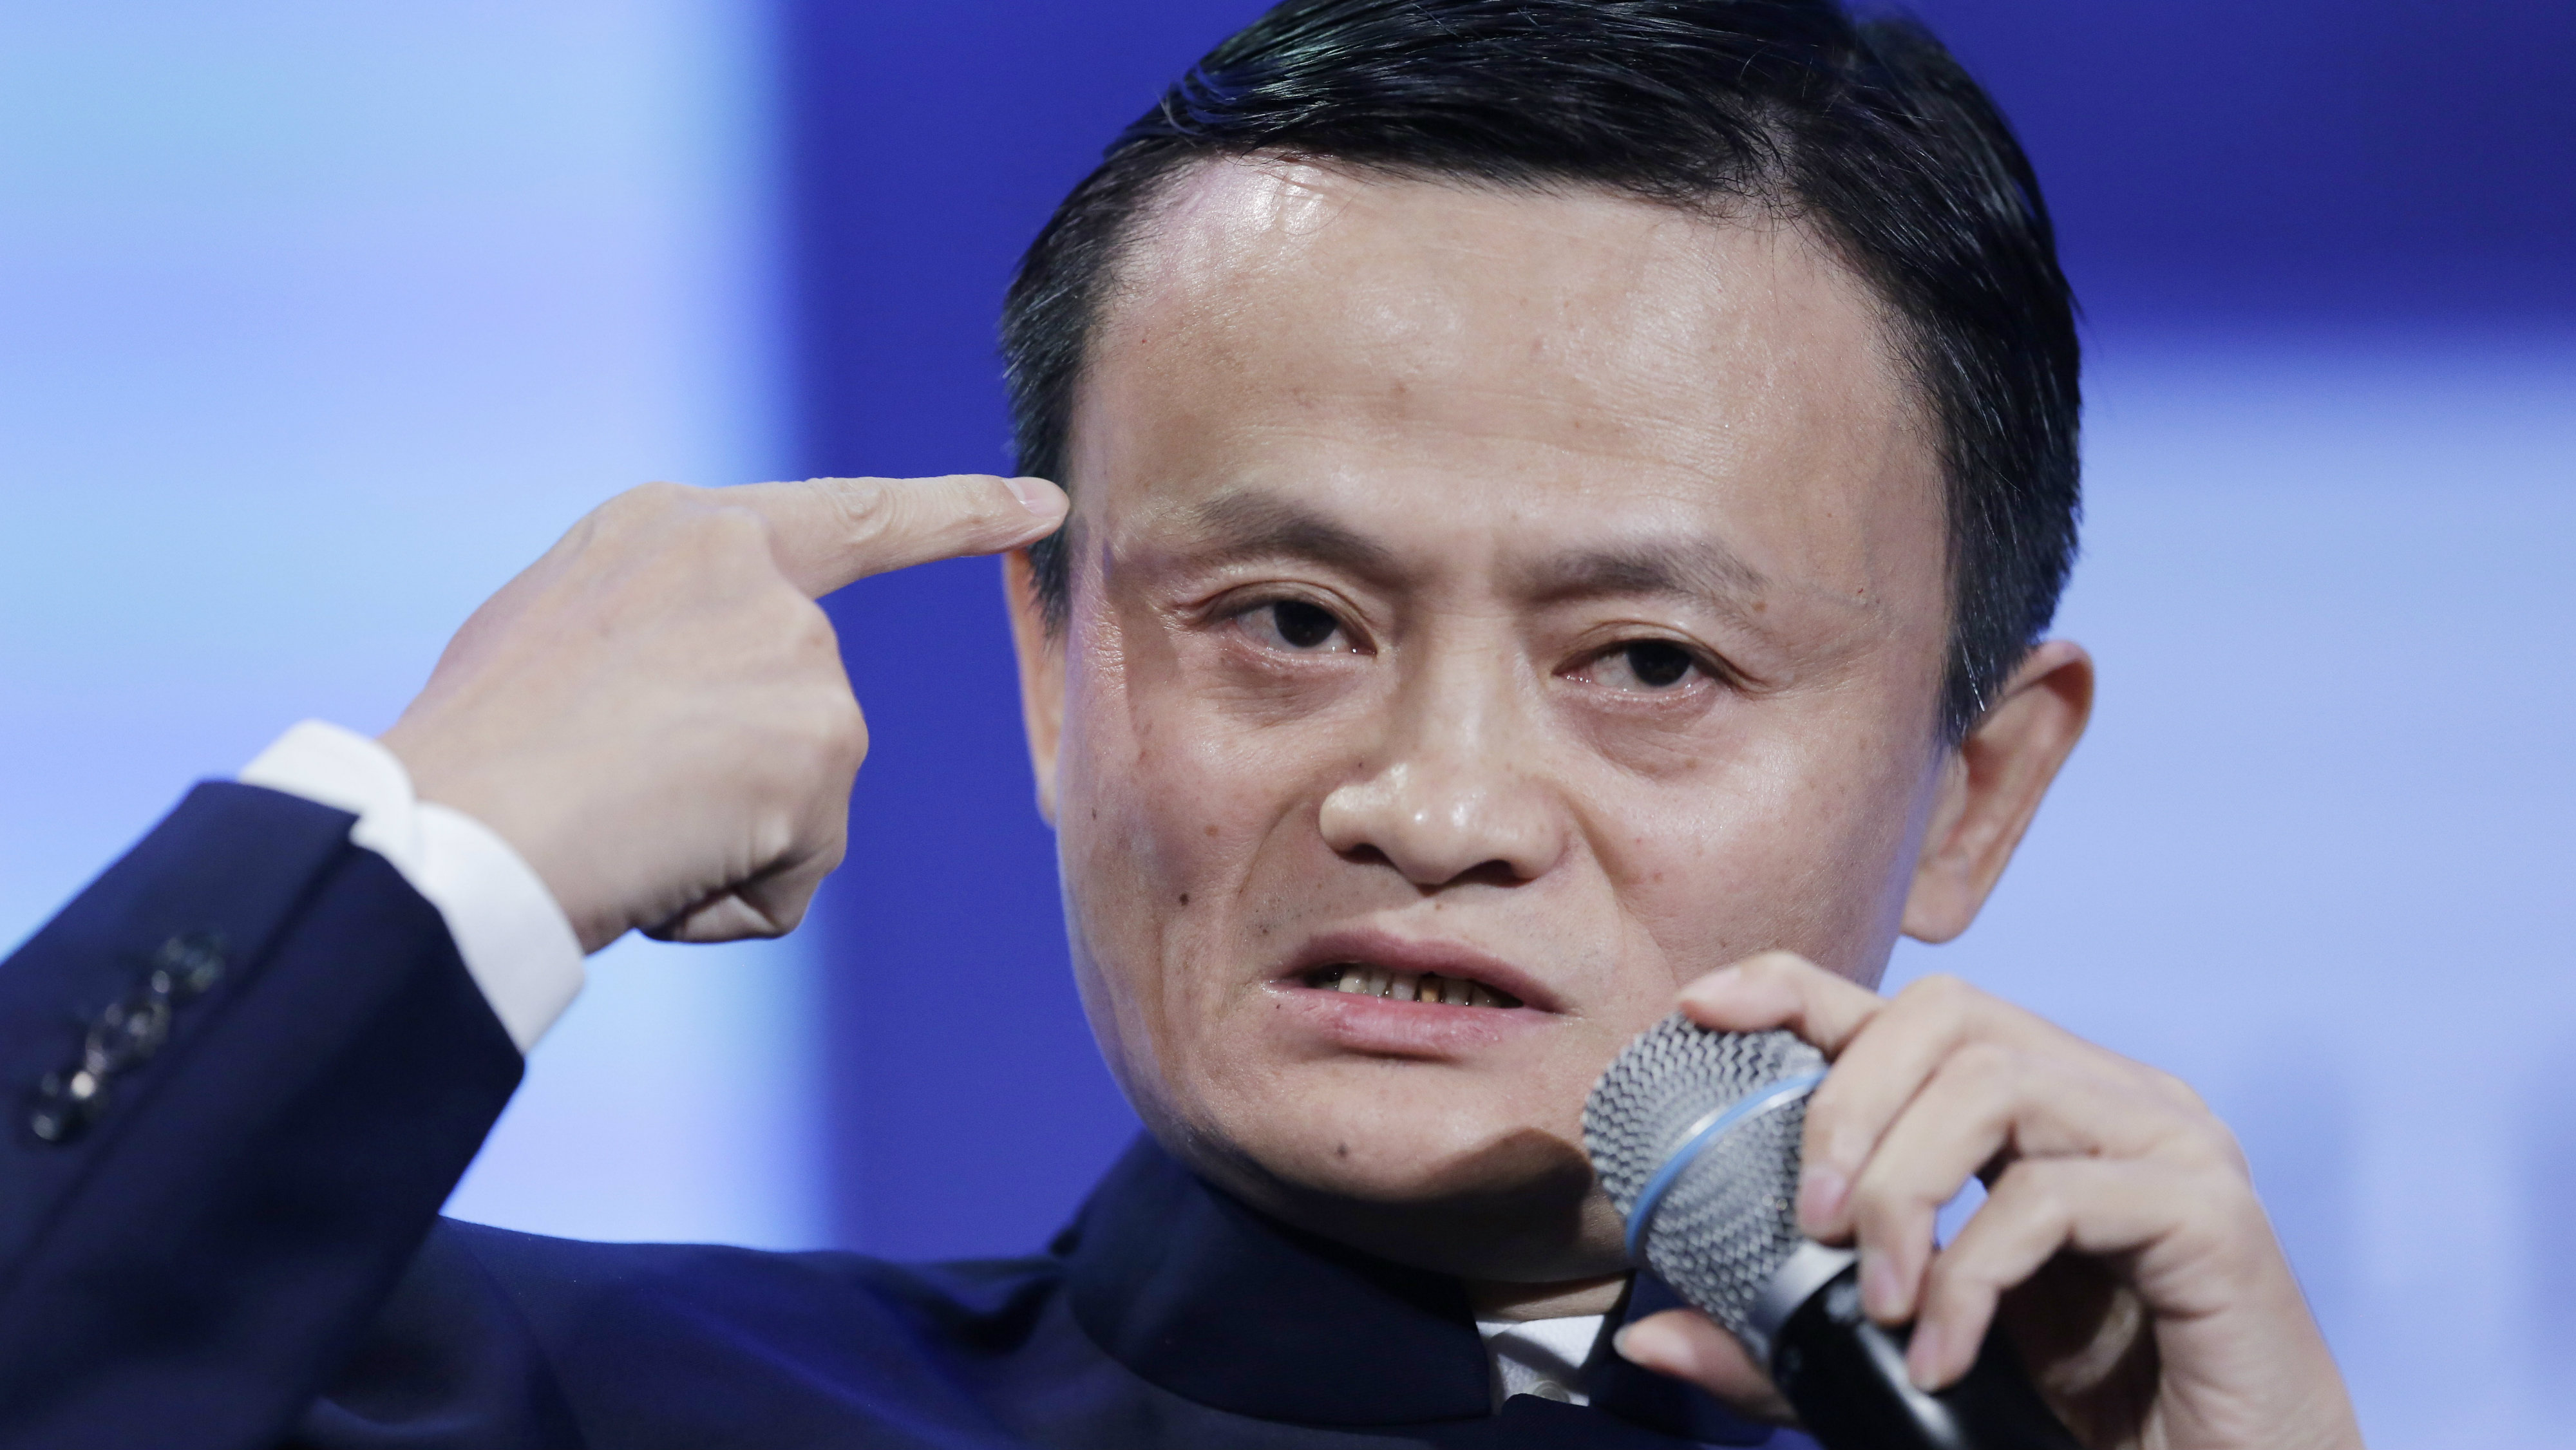 Jack Ma Founder Of Alibaba Speaks At The Clinton Global Initiative In A Session